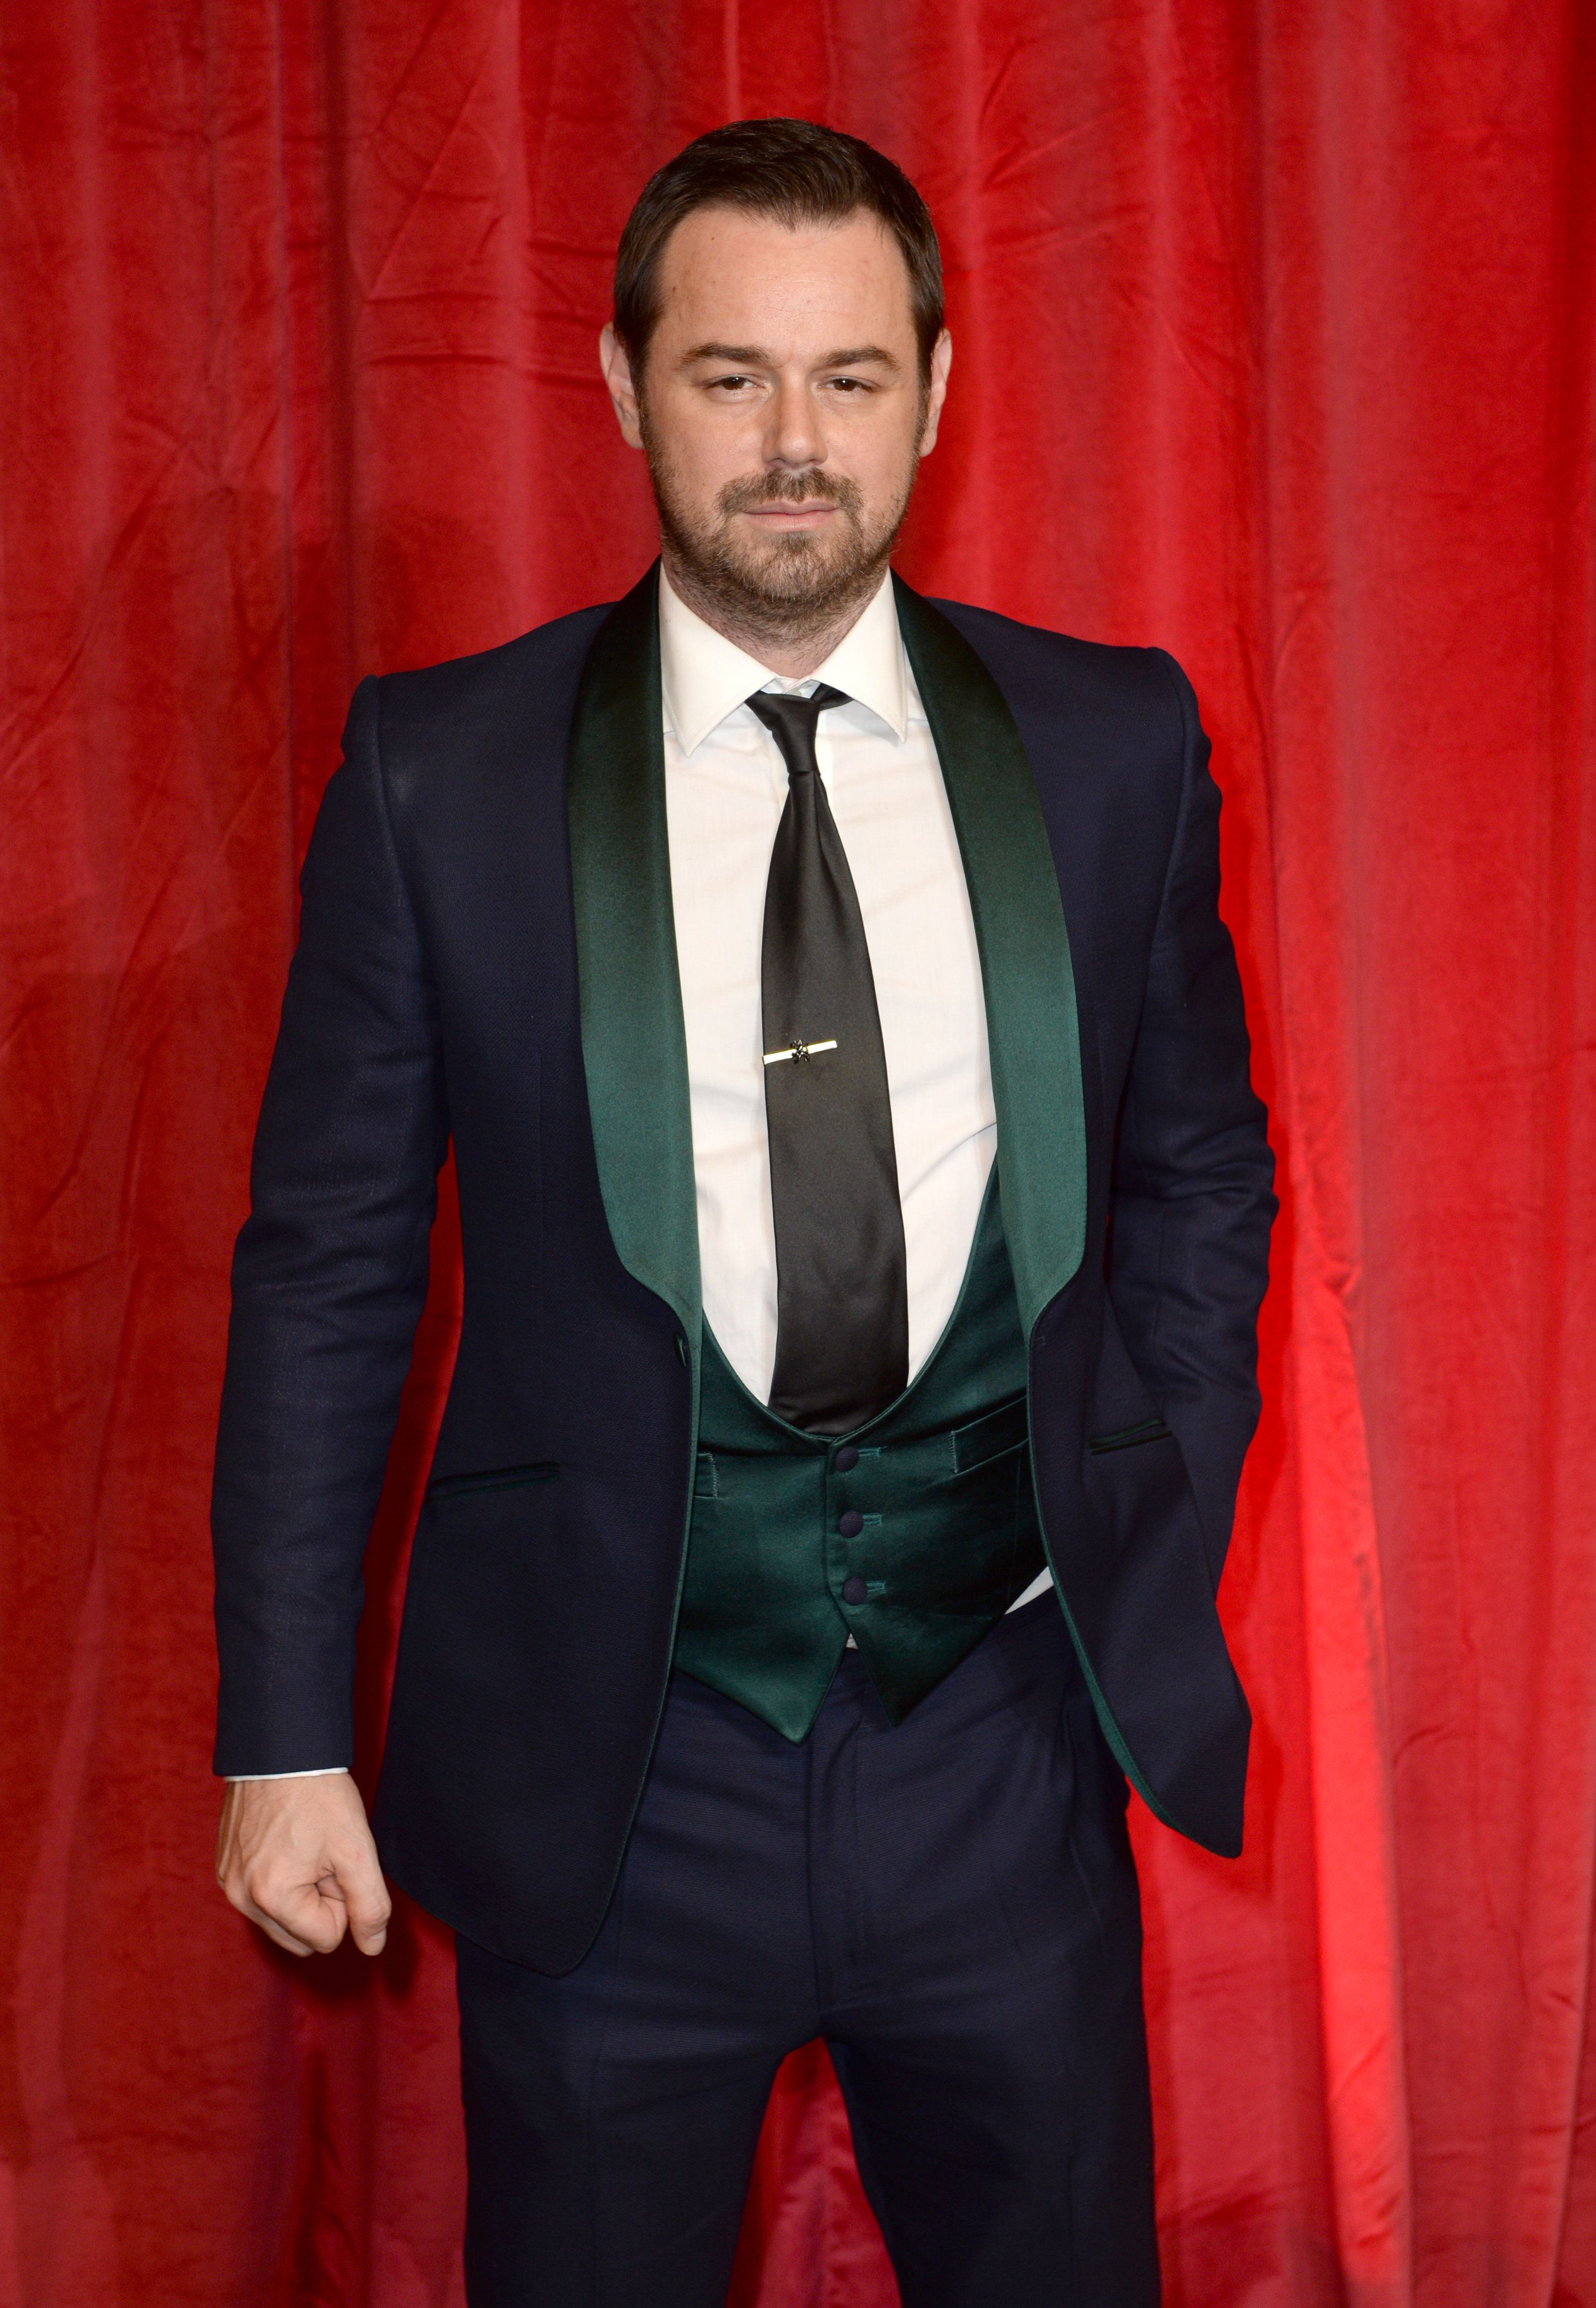 'EastEnders' Bosses Speak Out On Reports Danny Dyer Has Threatened To